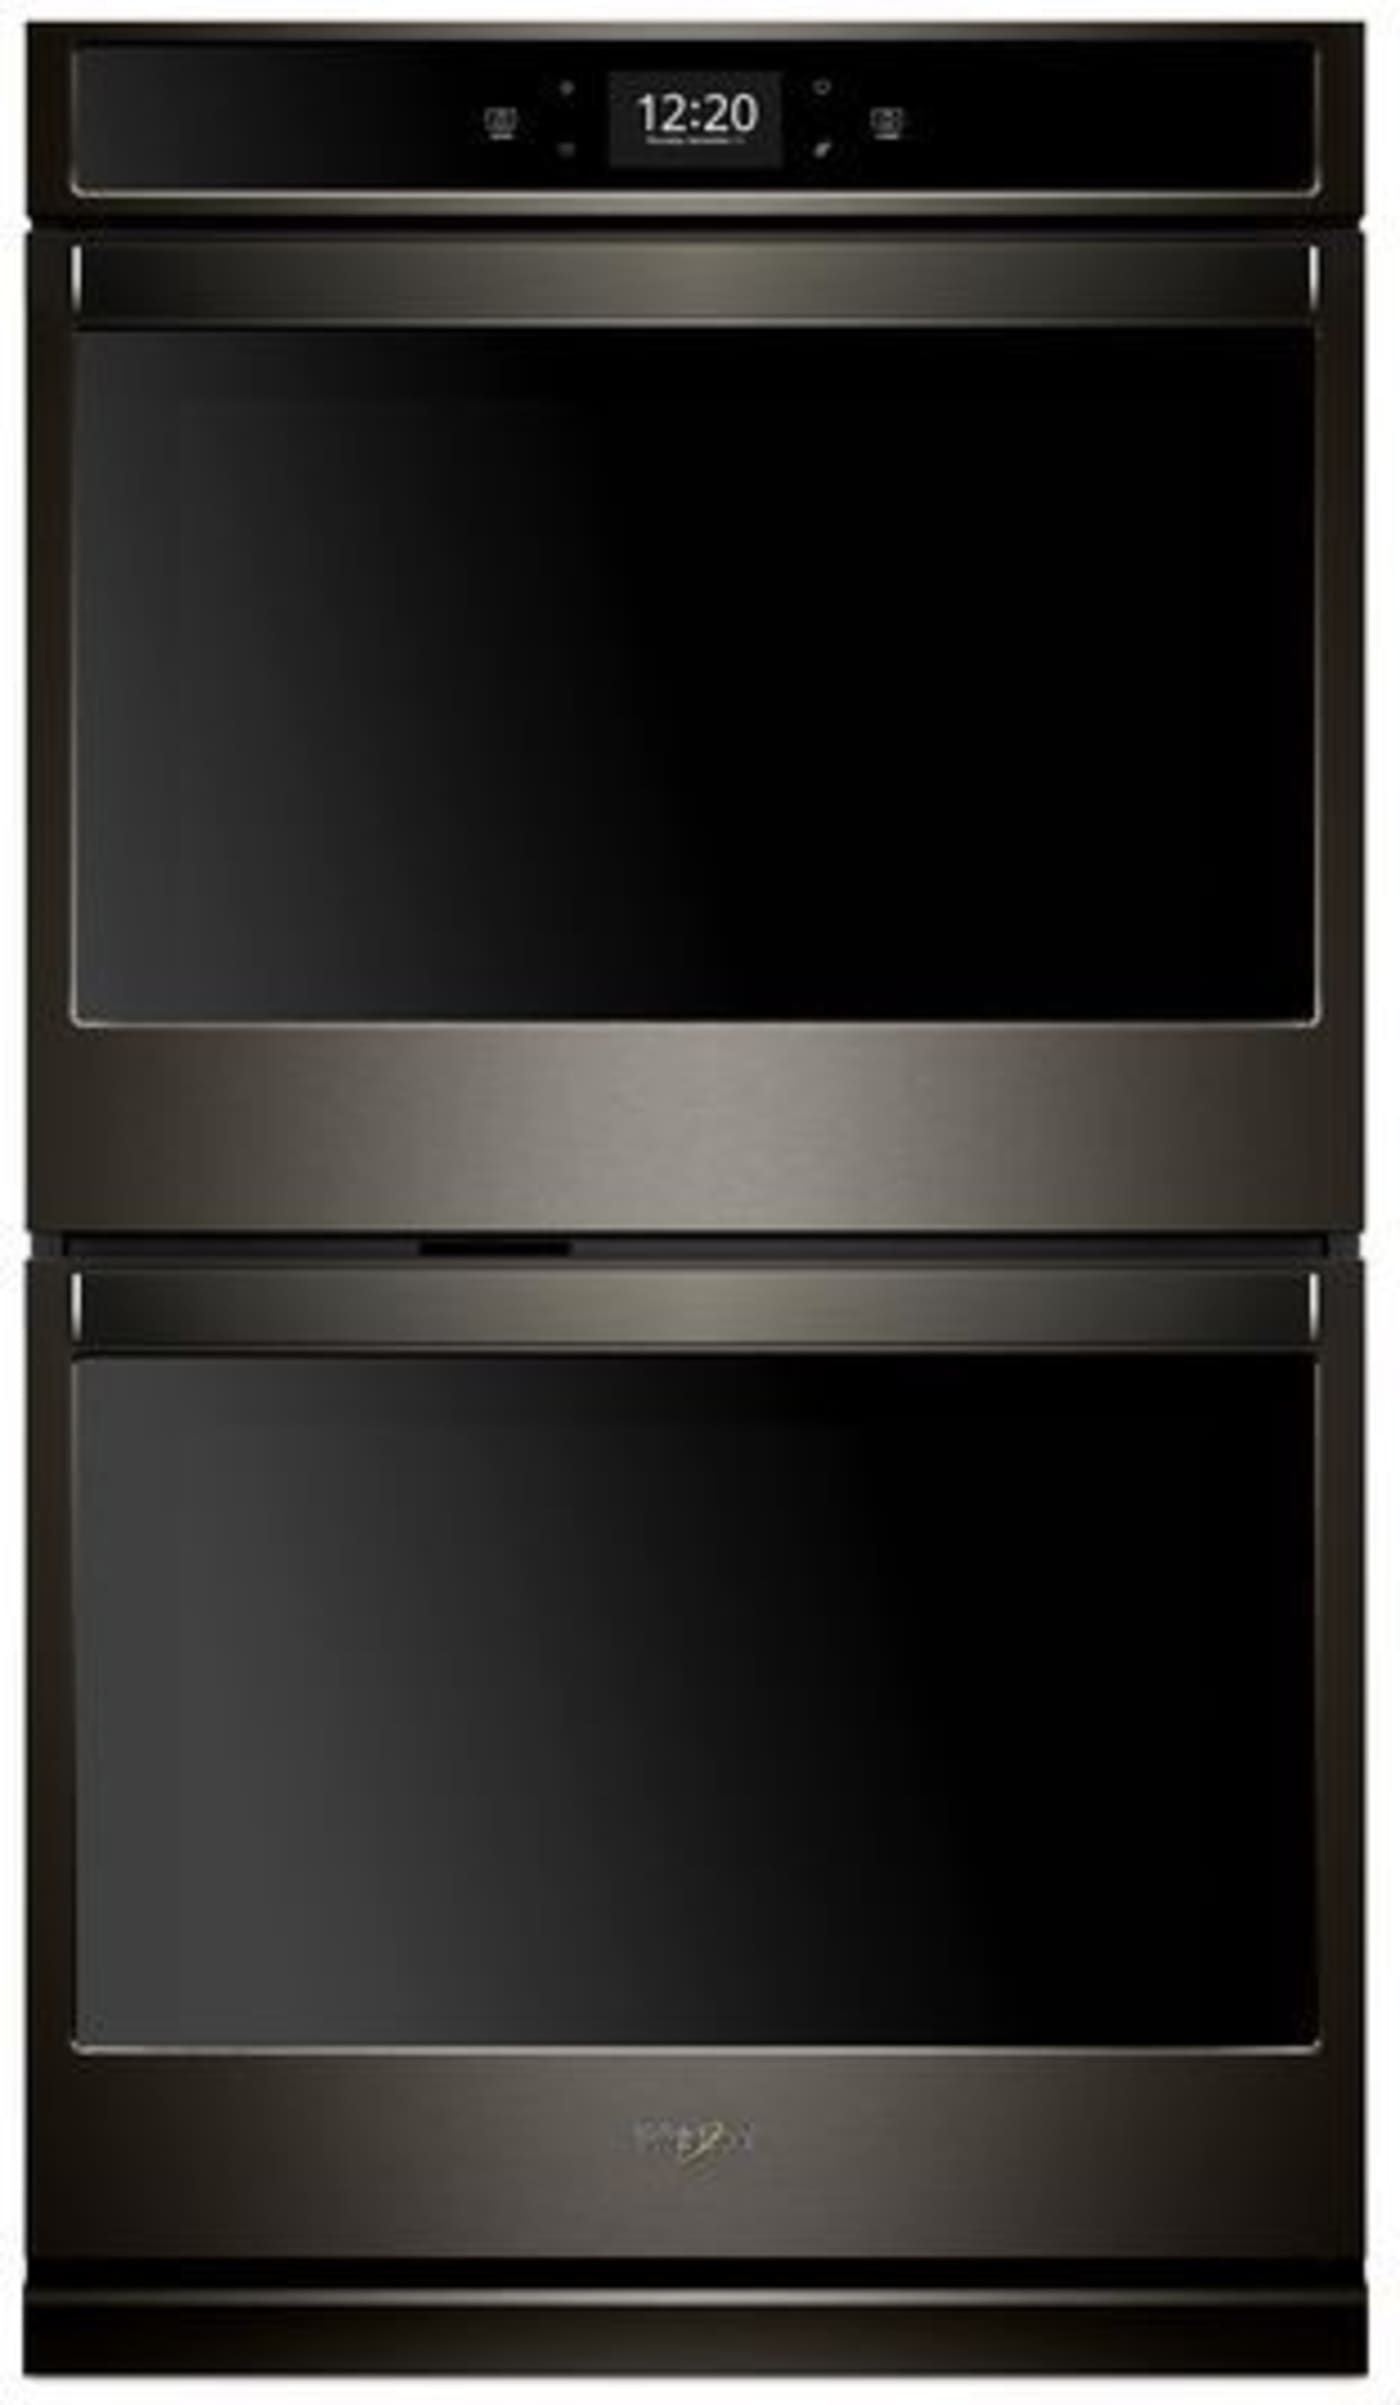 Wod77ec0hv By Whirlpool Double Wall Ovens Goedekers Com Wall Oven Double Wall Oven Electric Wall Oven